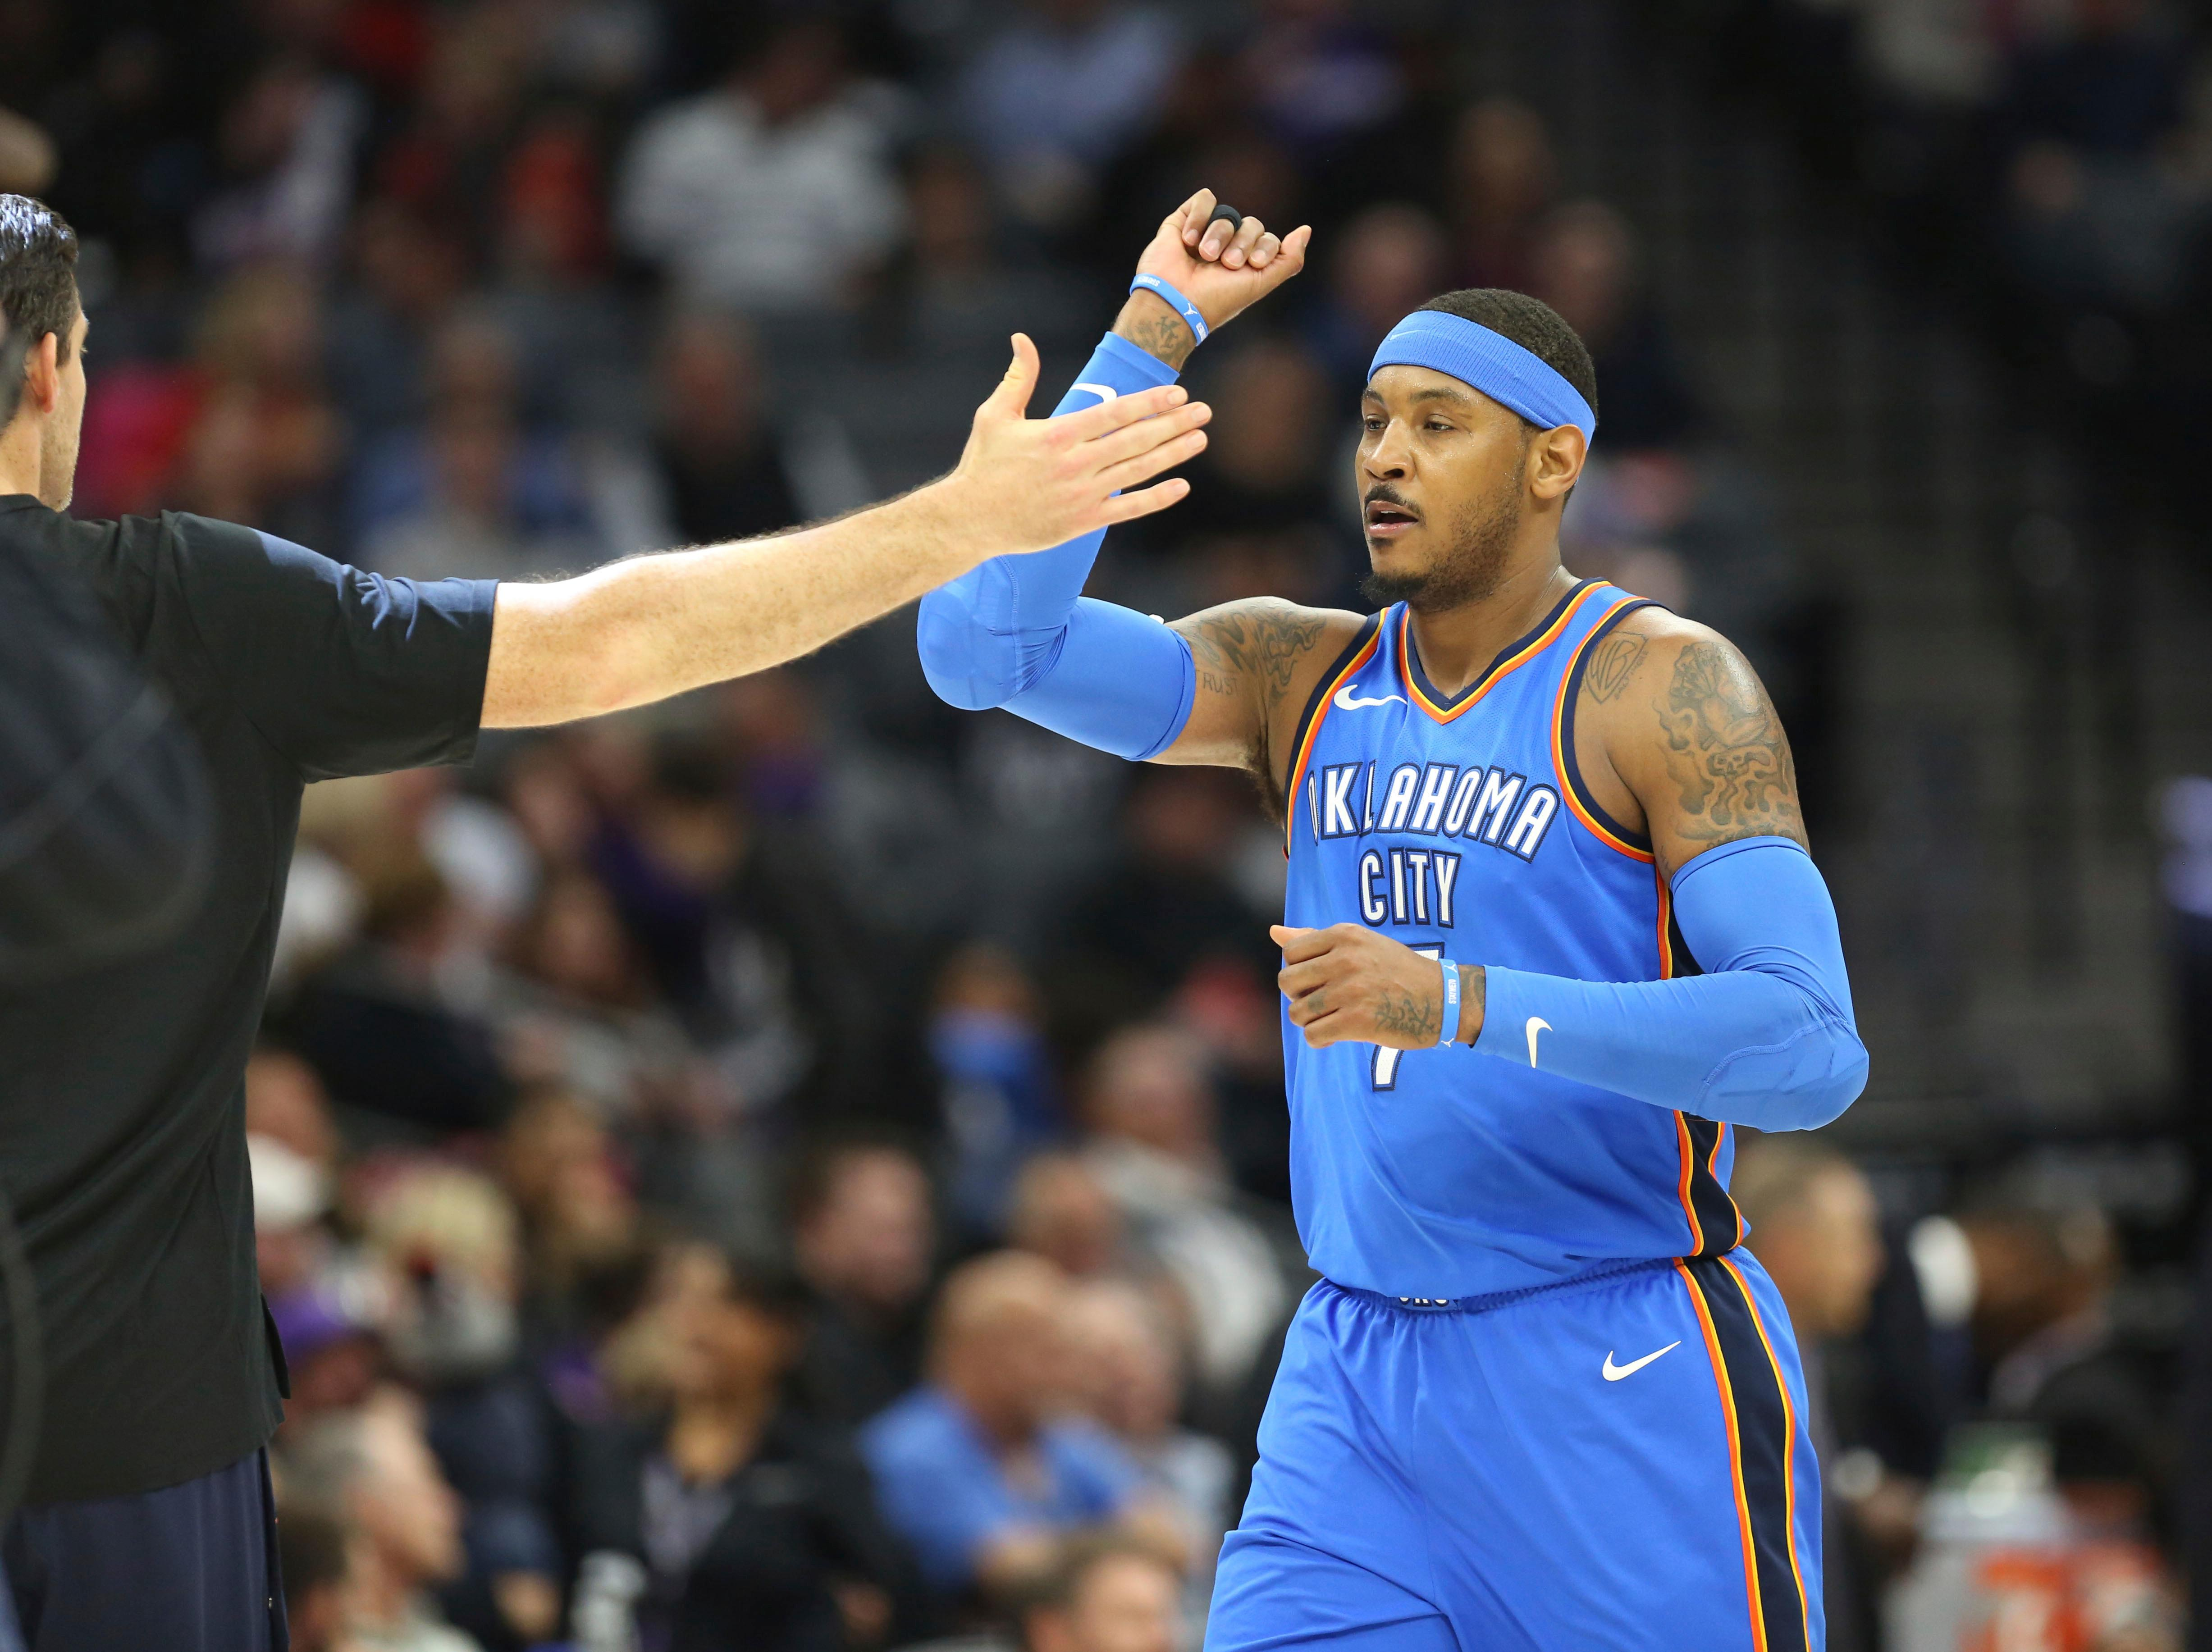 Oklahoma City Thunder forward Carmelo Anthony (7) is greeted by teammates at the end of the first half of an NBA basketball game against the Sacramento Kings in Sacramento, Calif., Thursday, Feb. 22, 2018. (AP Photo/Steve Yeater)